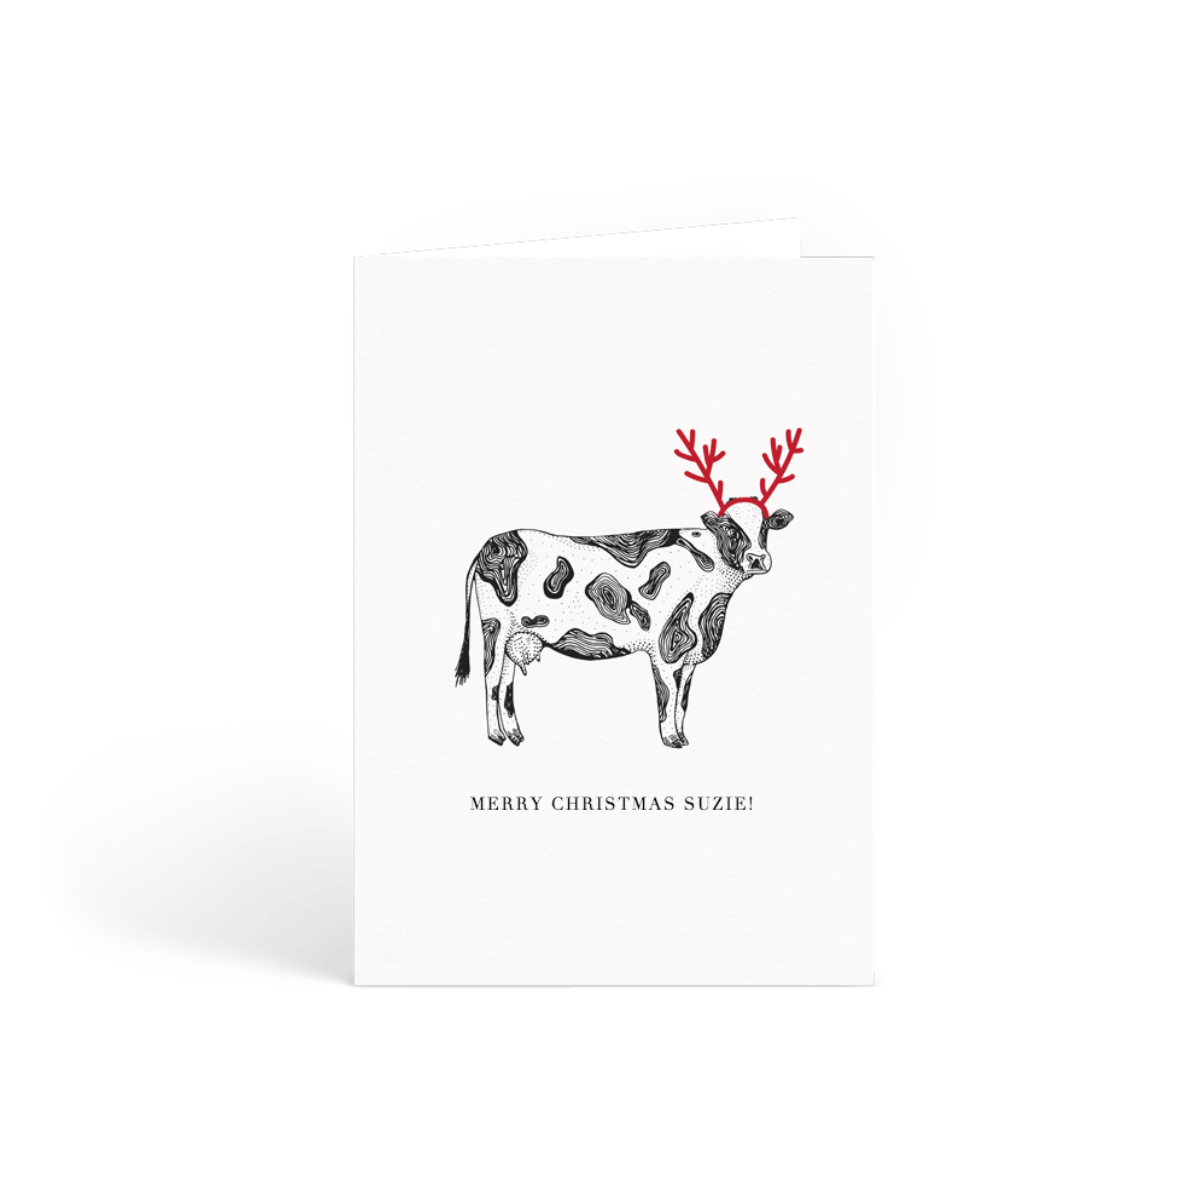 Https%3a%2f%2fwww.papier.com%2fproduct image%2f12458%2f2%2fchristmas cow 3137 front 1568139611.png?ixlib=rb 1.1